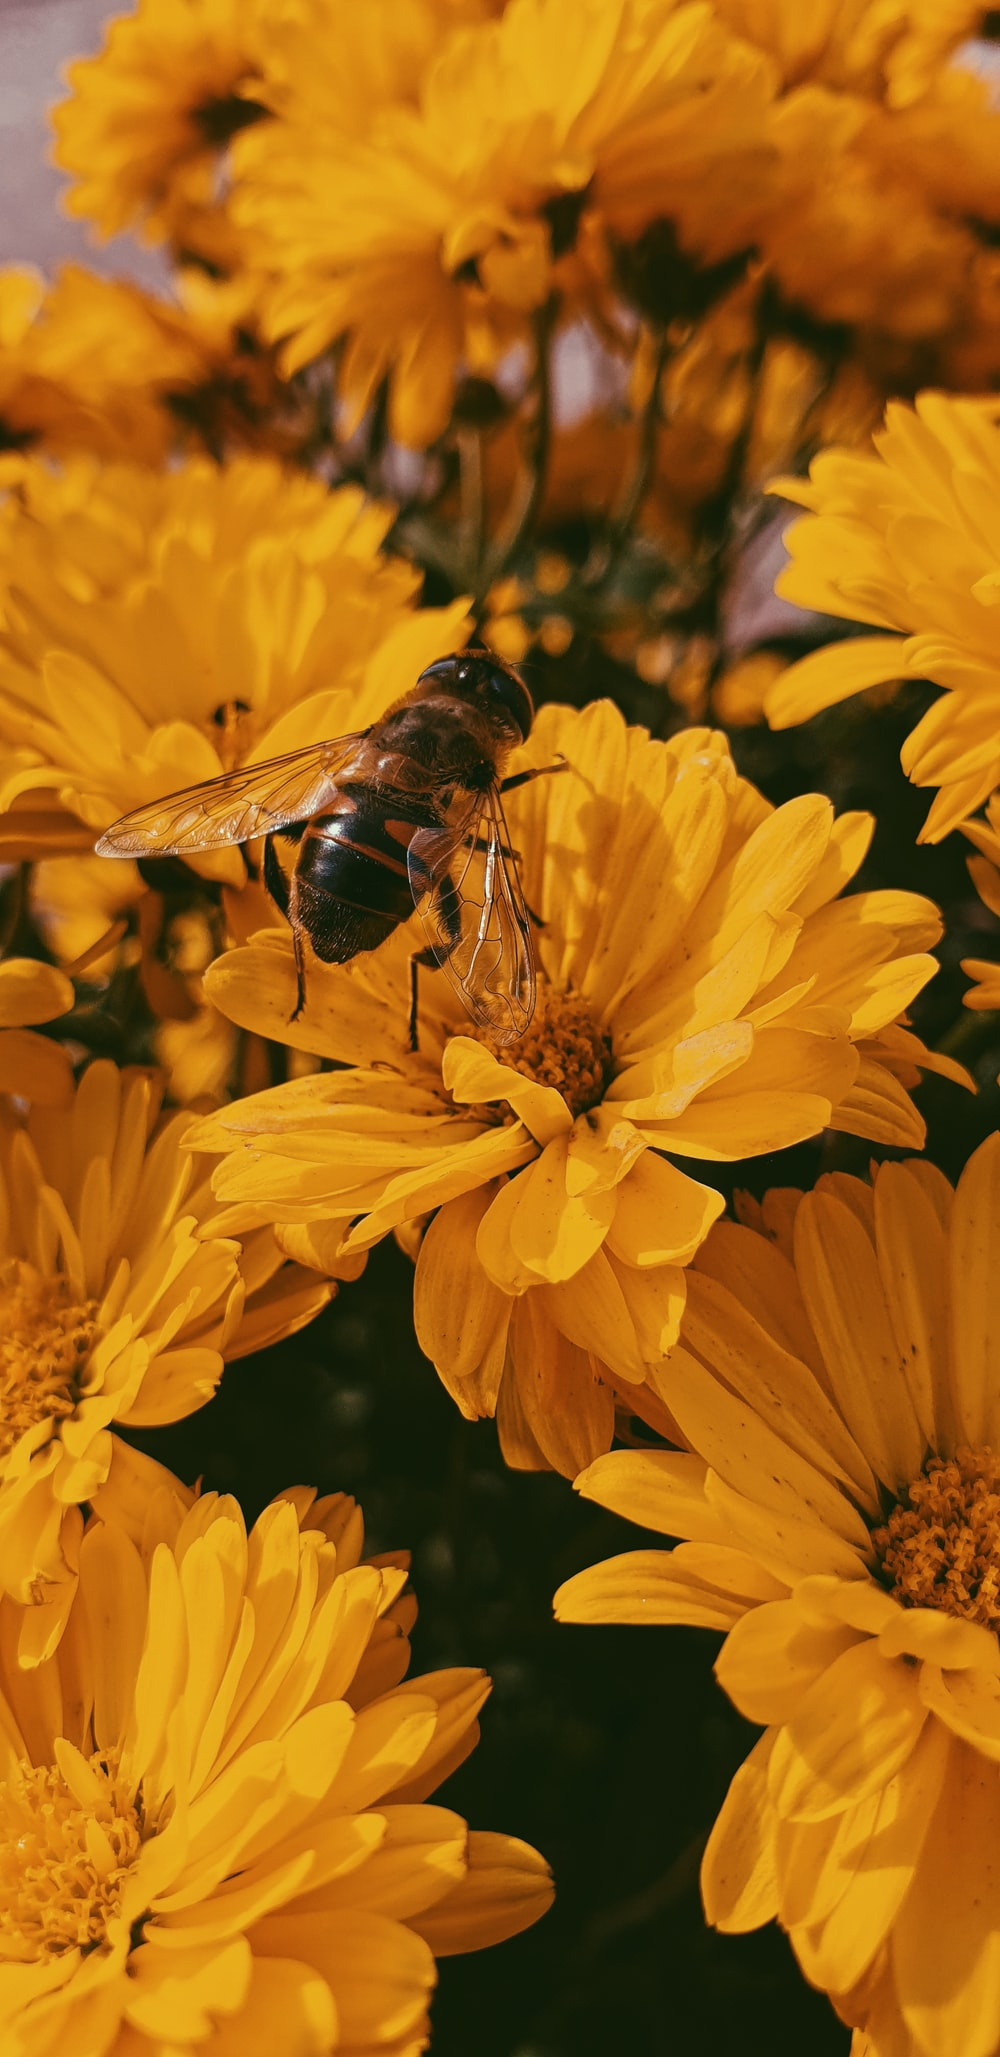 photo of brown and black bee on yellow flowers